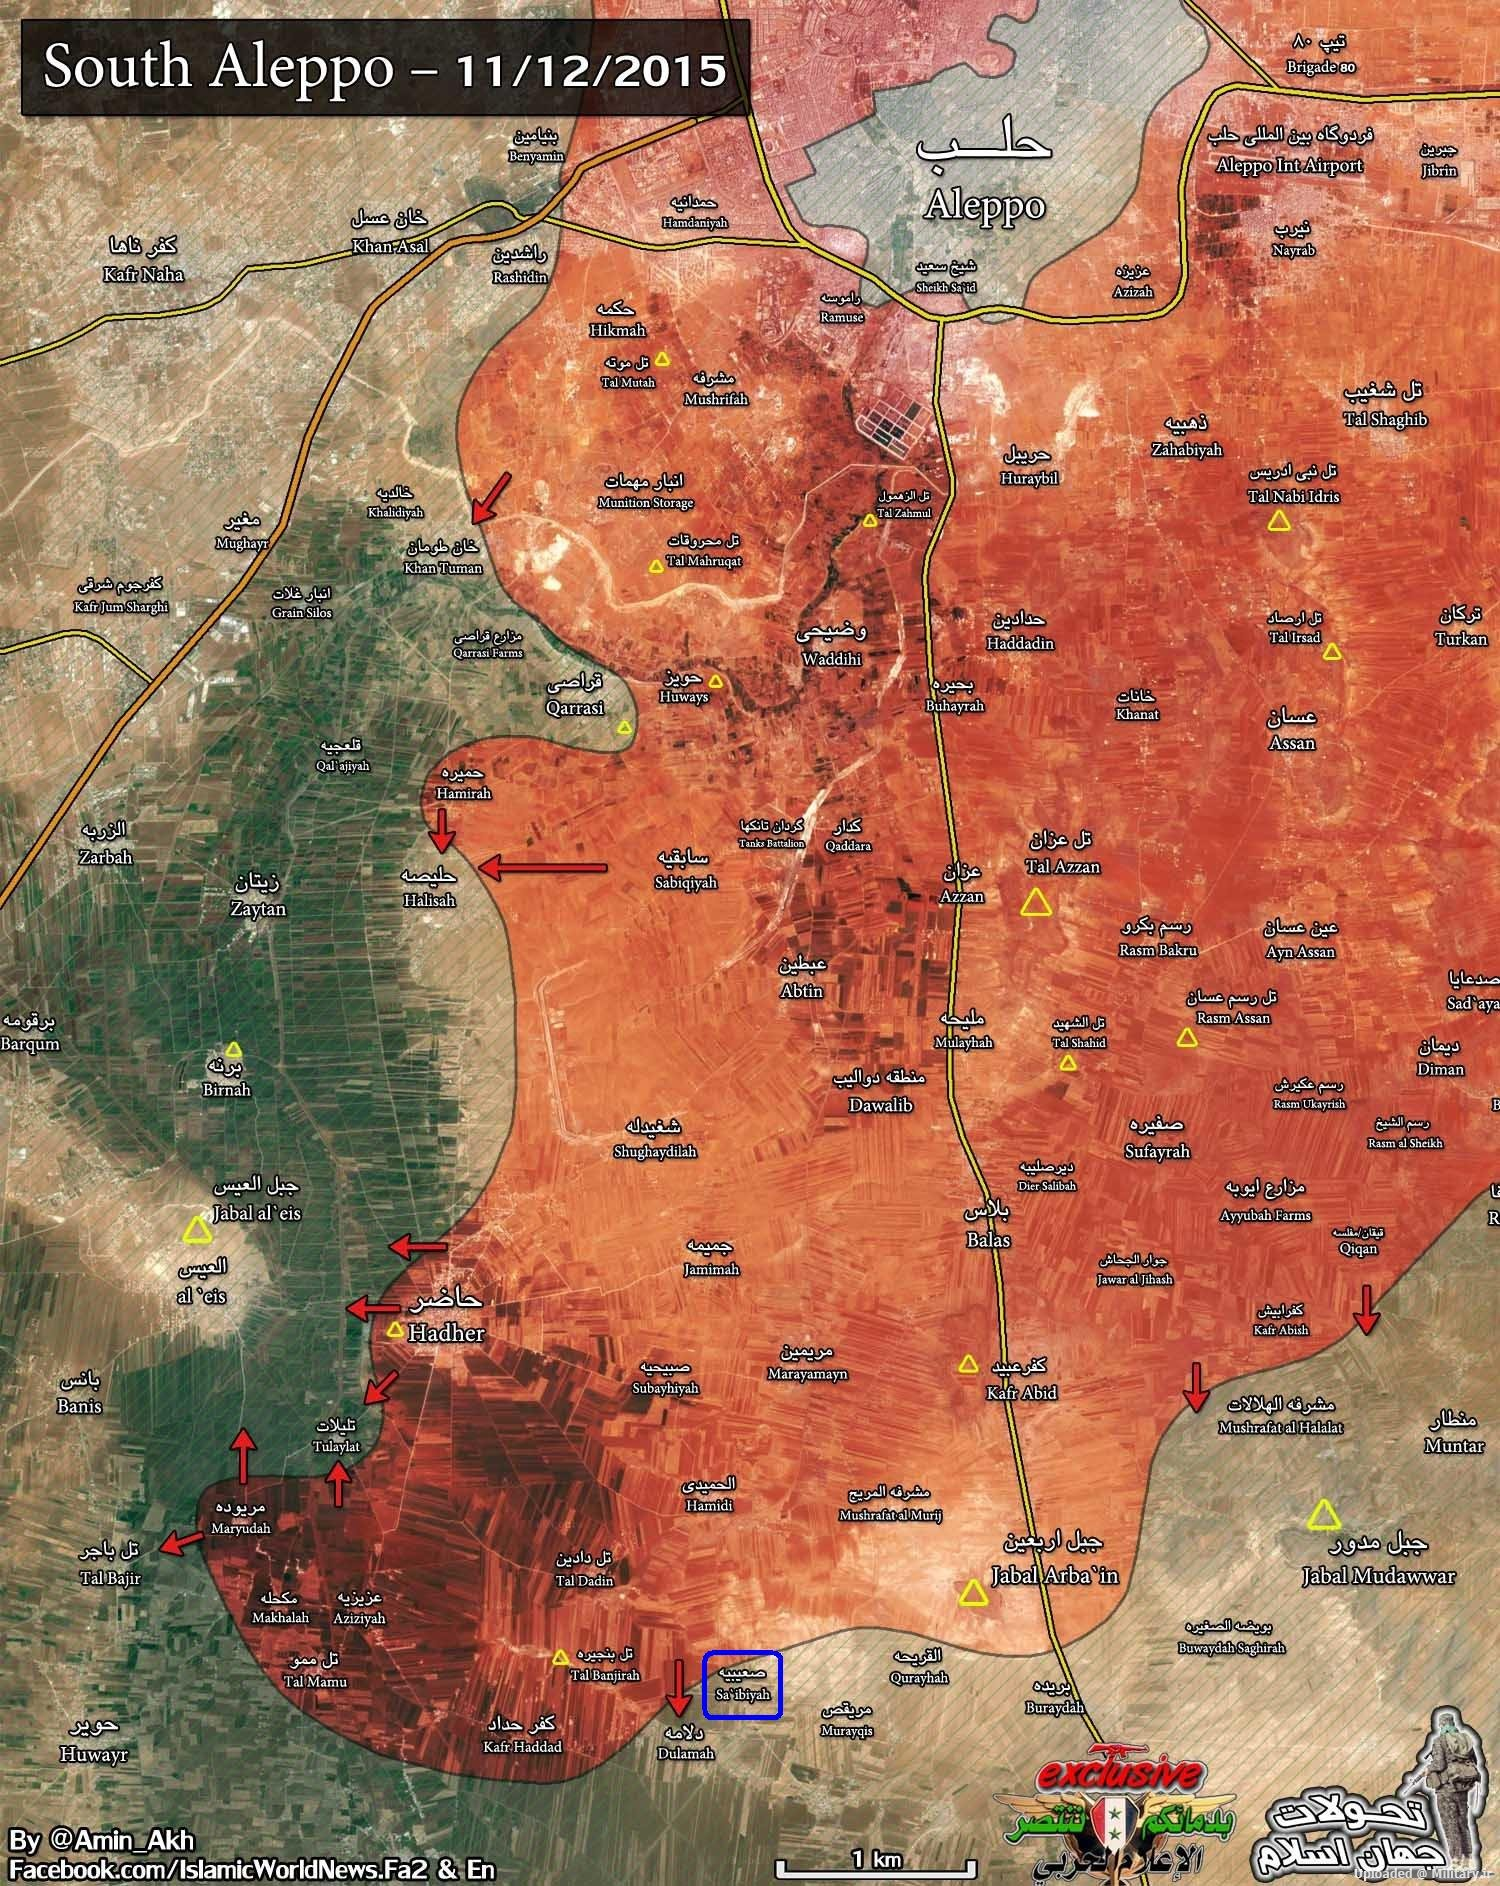 South_Aleppo_1km_cut1_12nov_20aban.JPG